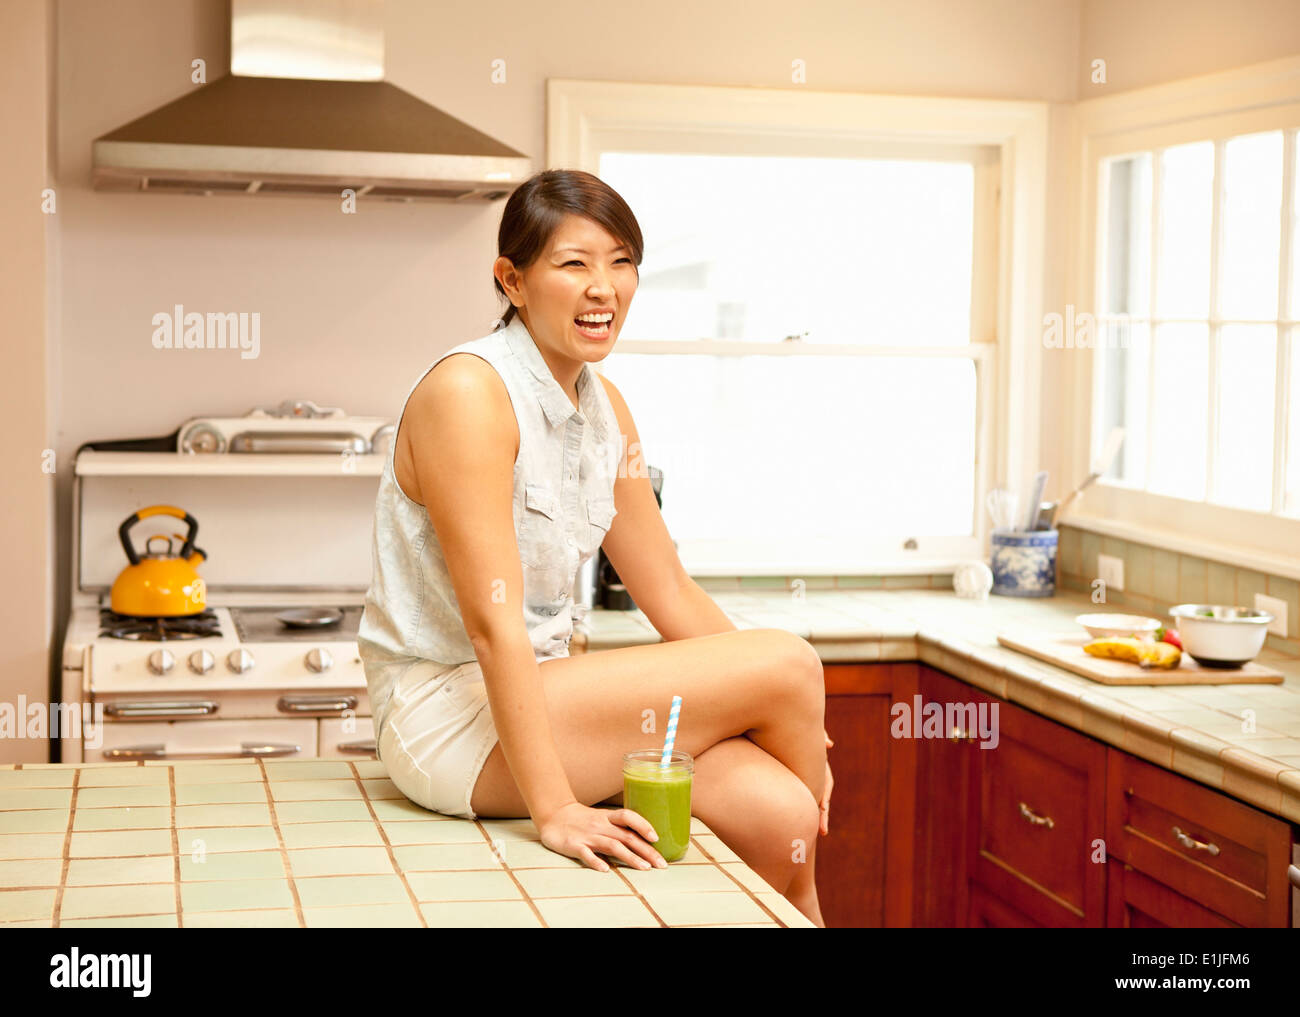 Young woman with green smoothie in kitchen - Stock Image